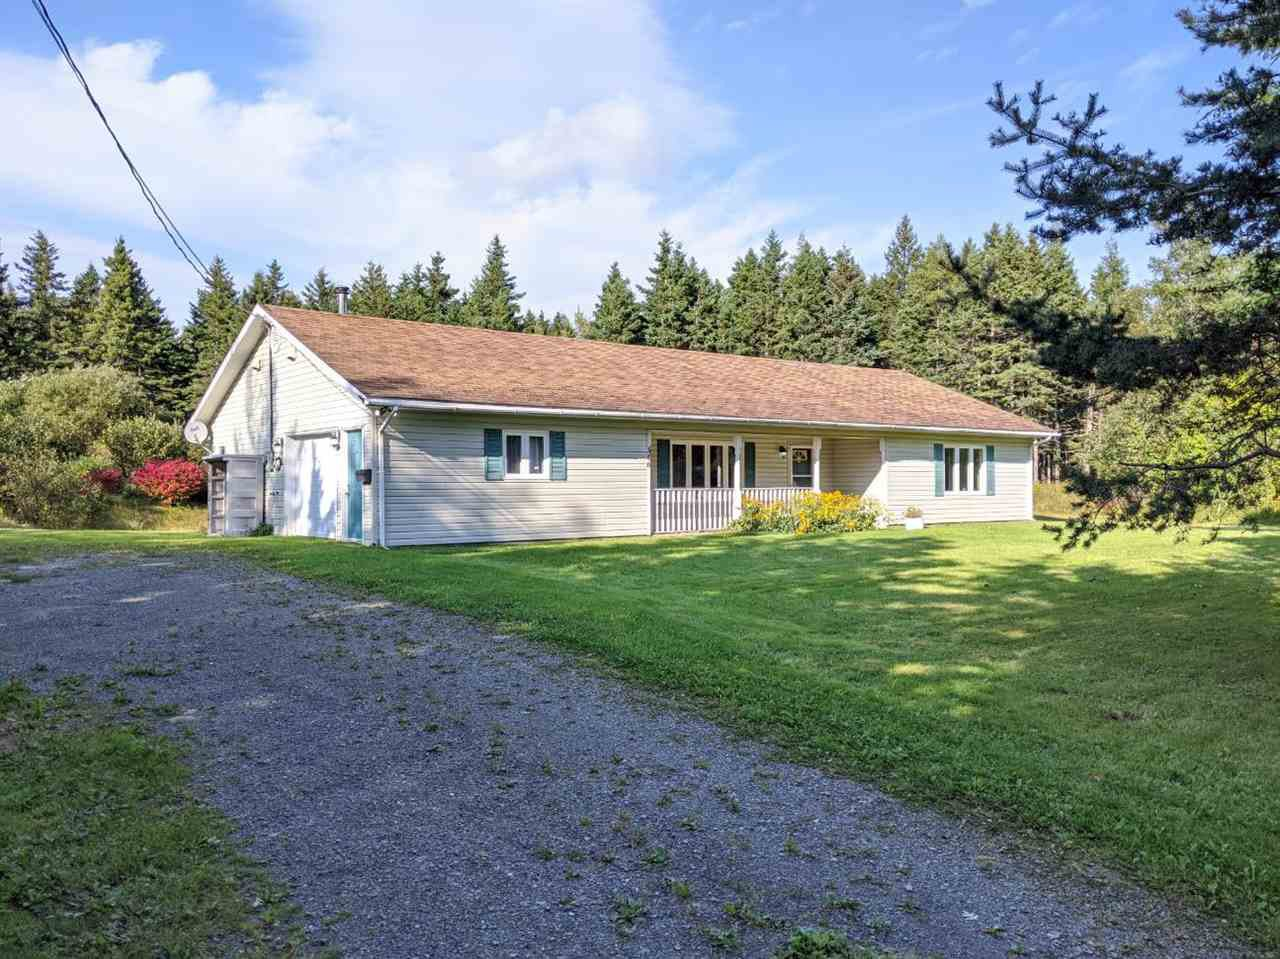 Main Photo: 346 Seaview Drive in North Sydney: 205-North Sydney Residential for sale (Cape Breton)  : MLS®# 202019912